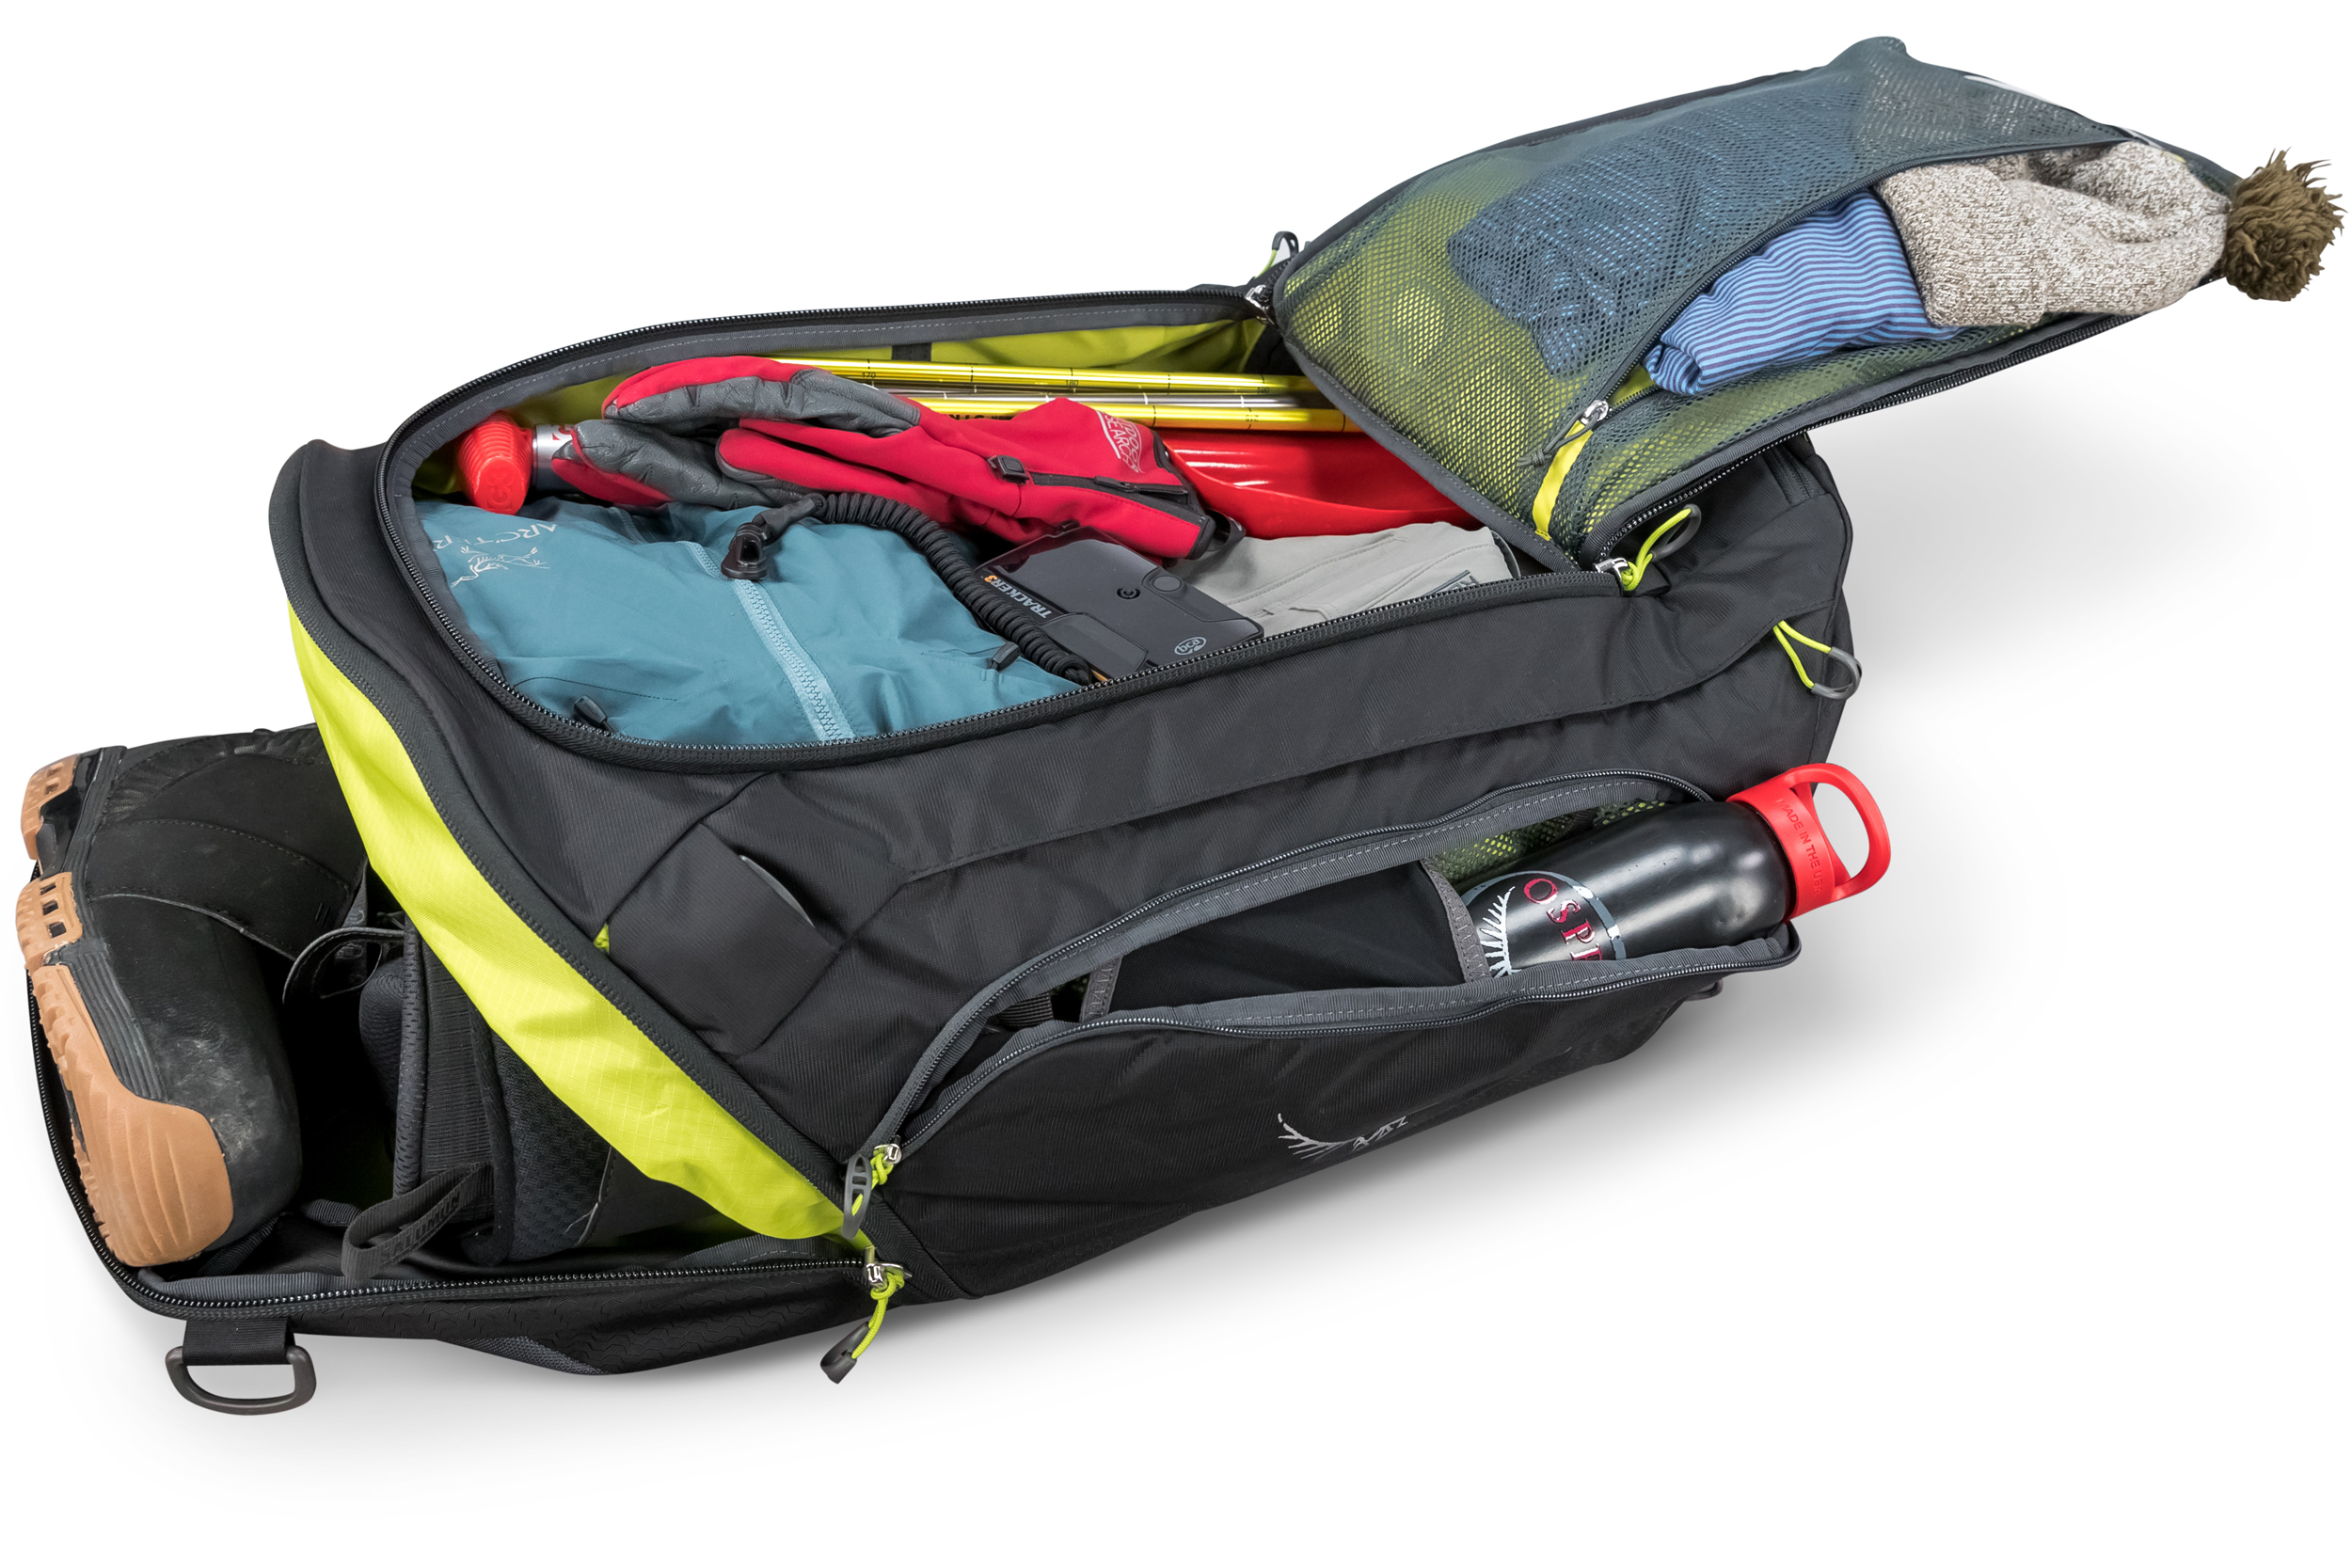 dcedcee062 Osprey Launches Sport-Specific Duffles